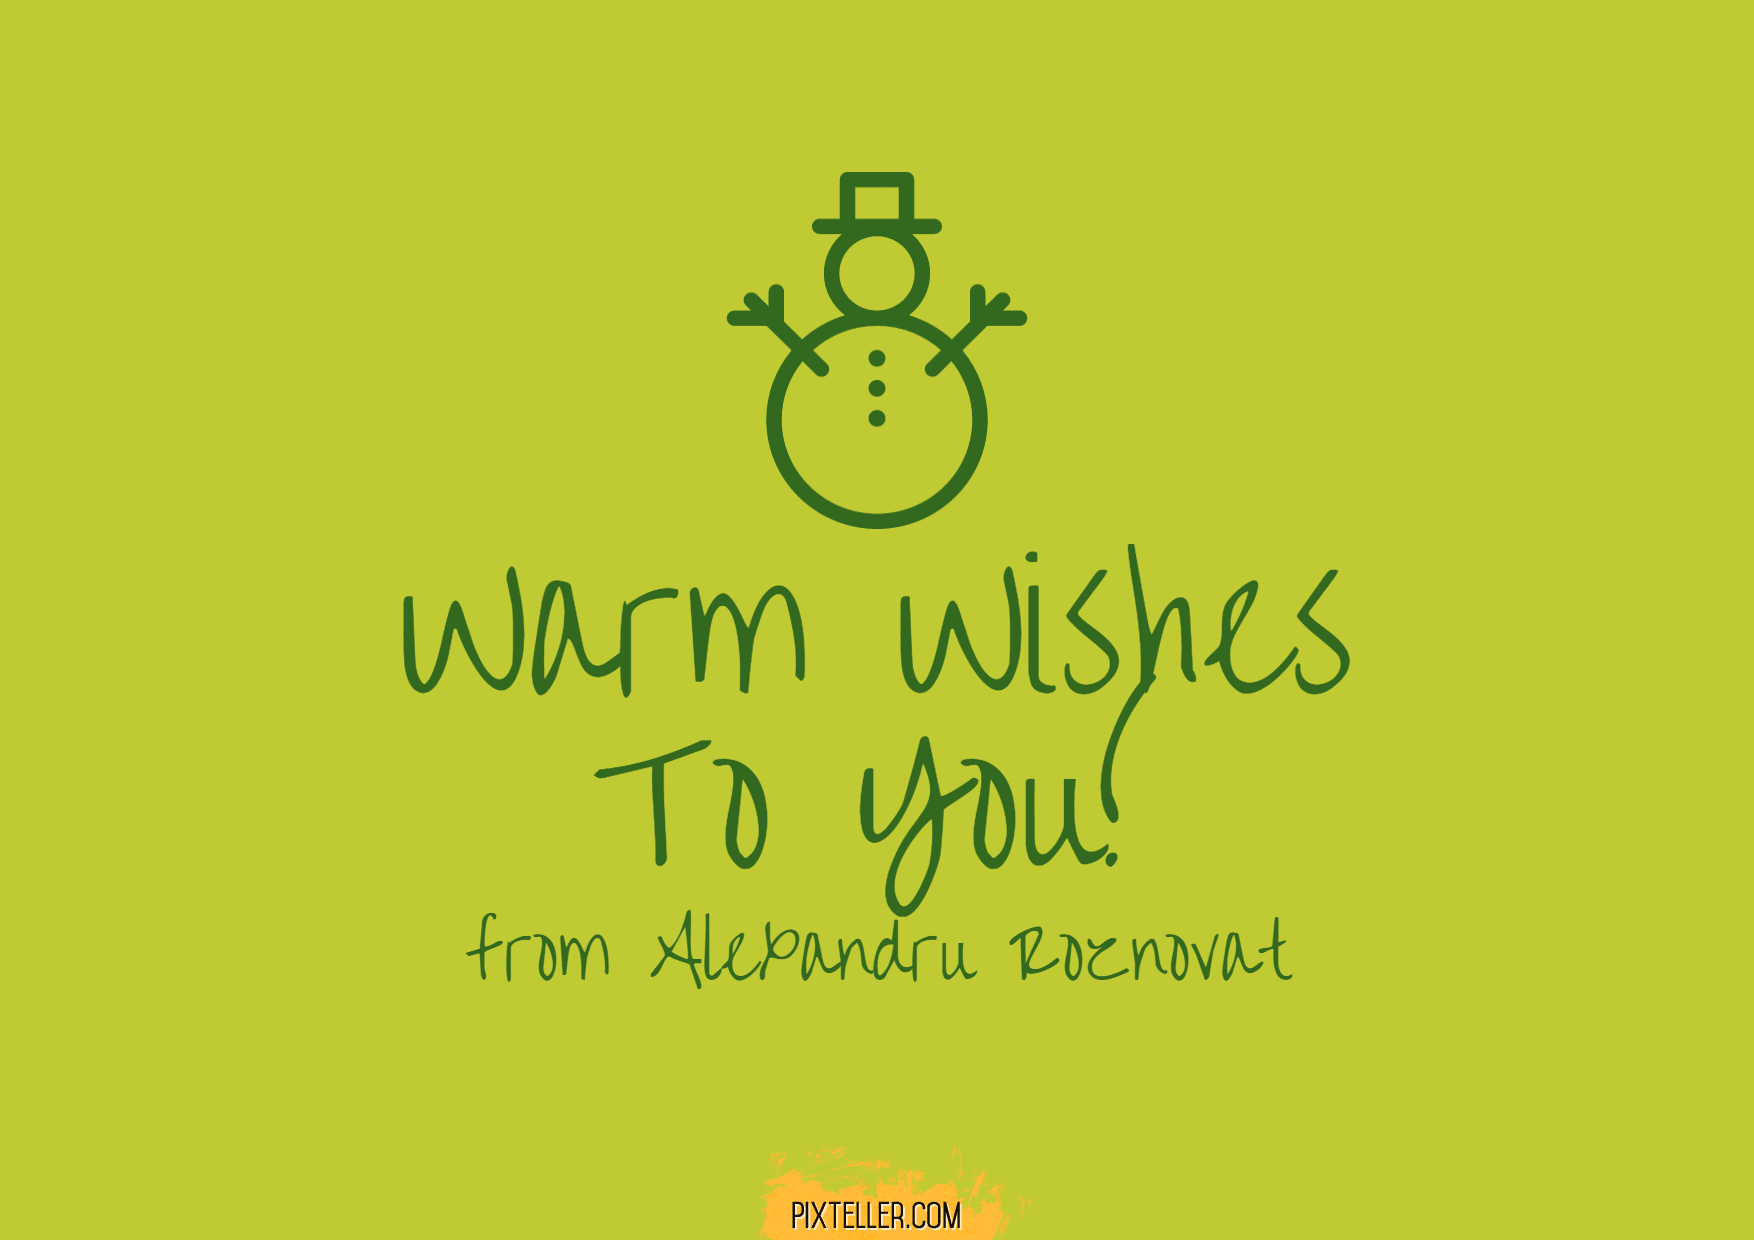 Green,                Text,                Yellow,                Font,                Produce,                Logo,                Line,                Area,                Organism,                Happiness,                Christmas,                Anniversary,                Holiday,                 Free Image